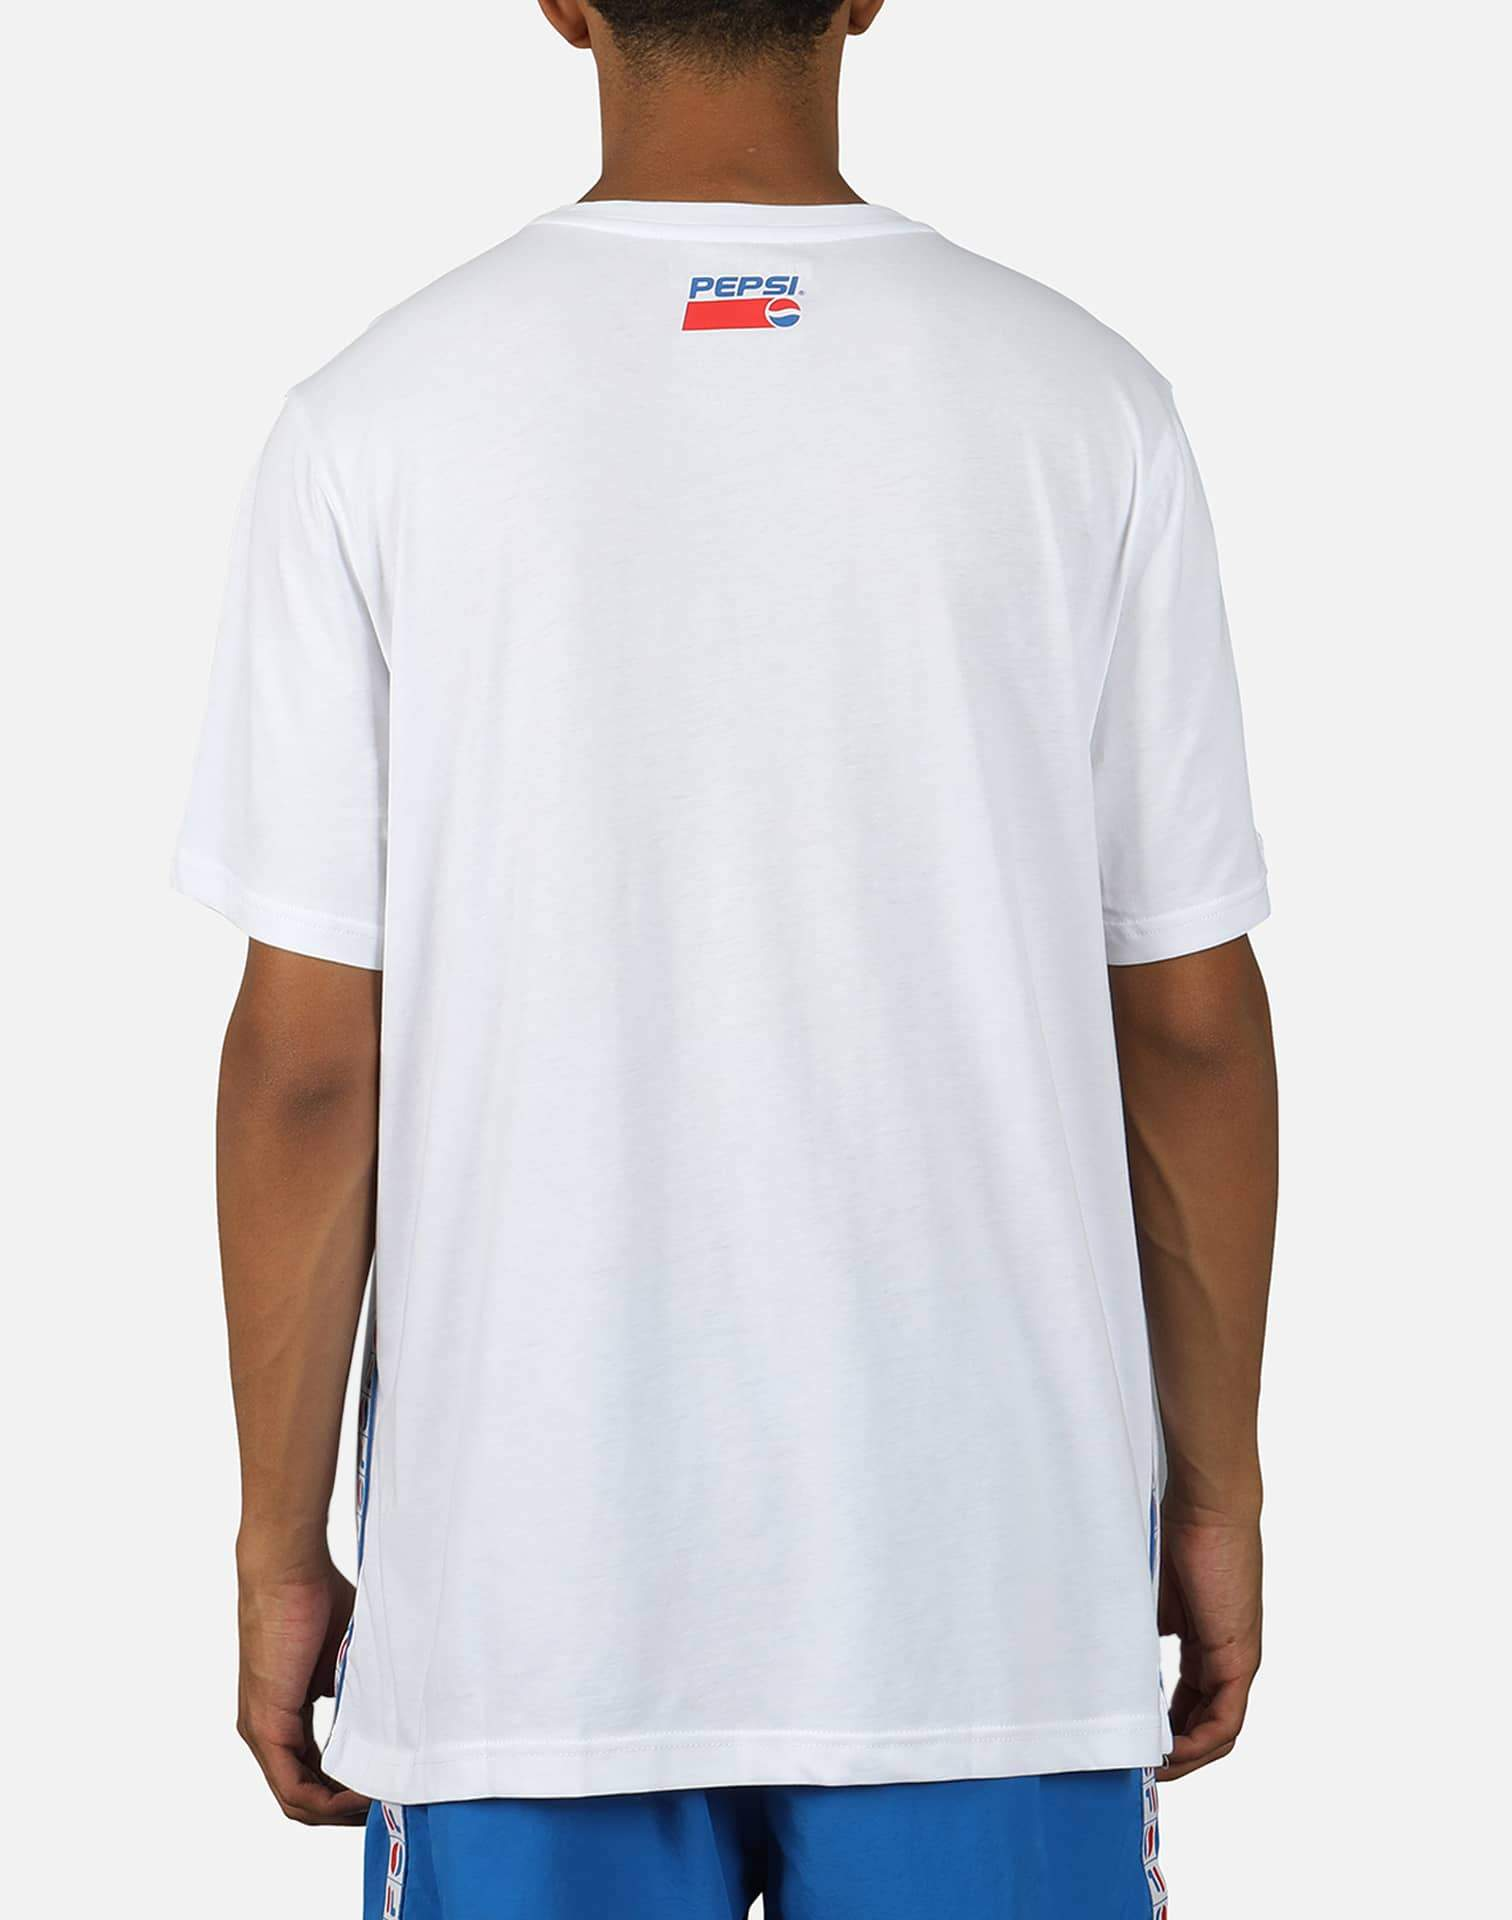 FILA x Pepsi Men's Tape Tee